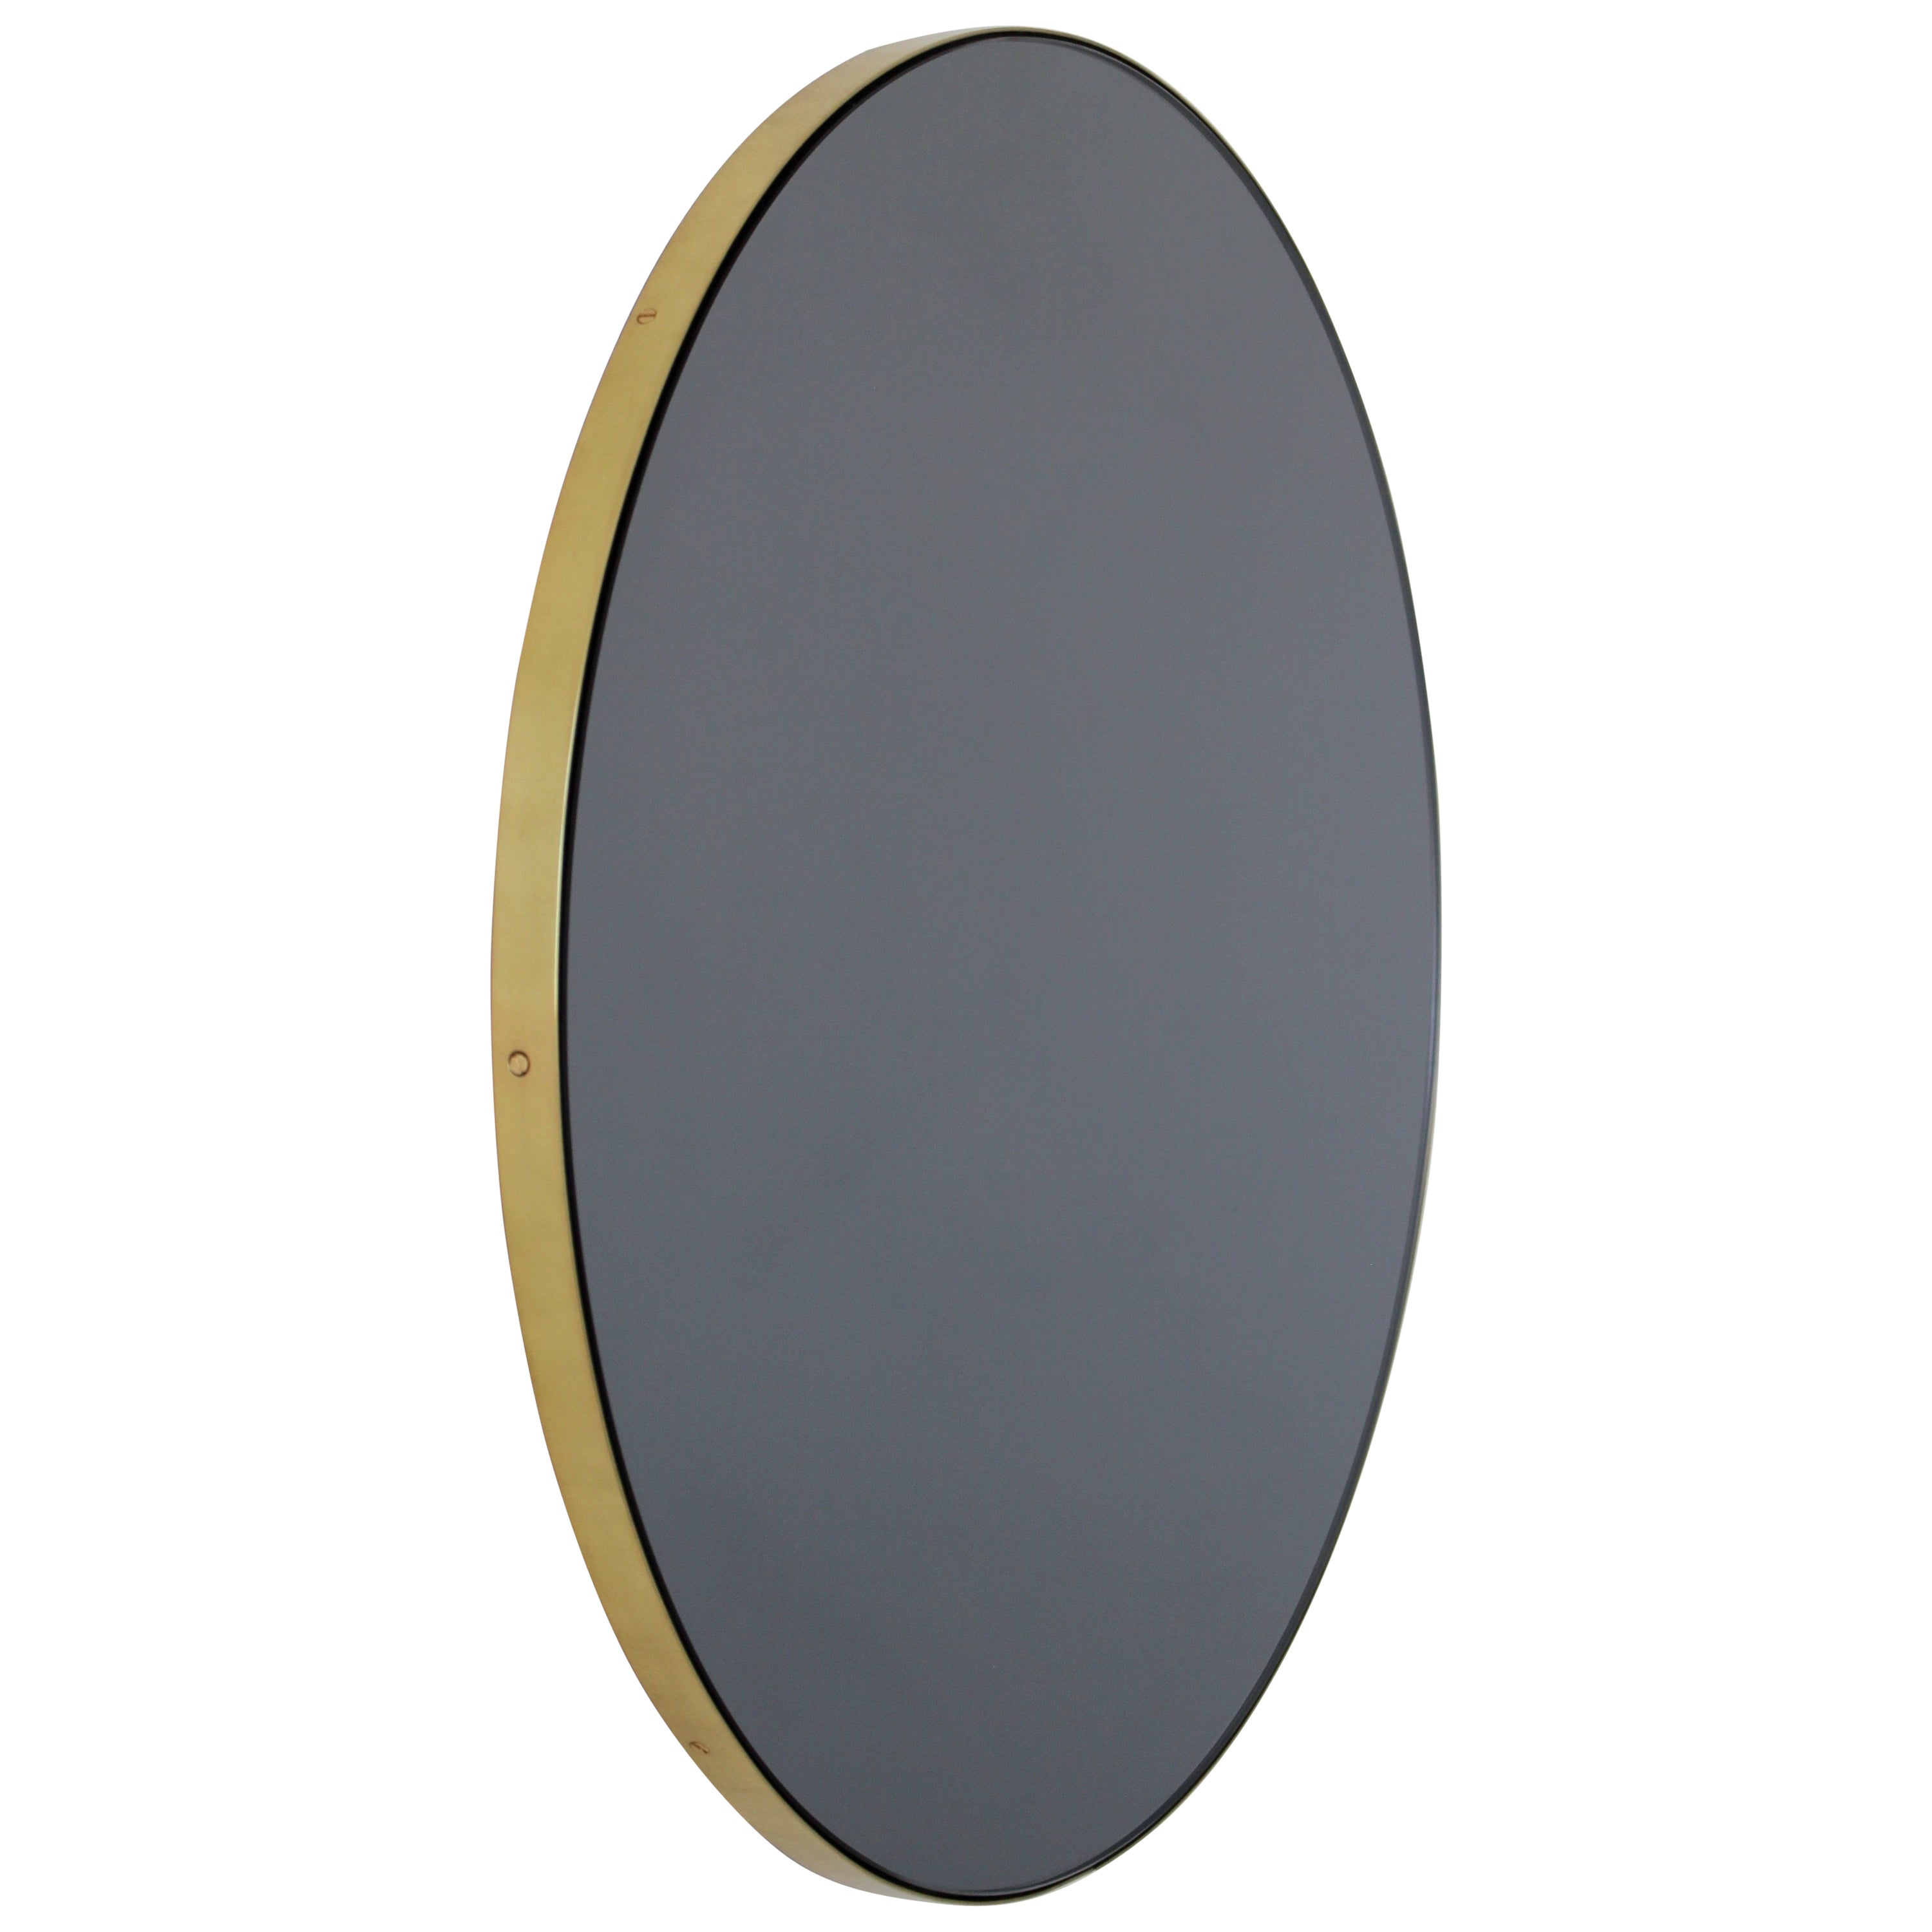 Orbis™ Black Tinted Round Elegant Mirror with a Brass Frame - Small